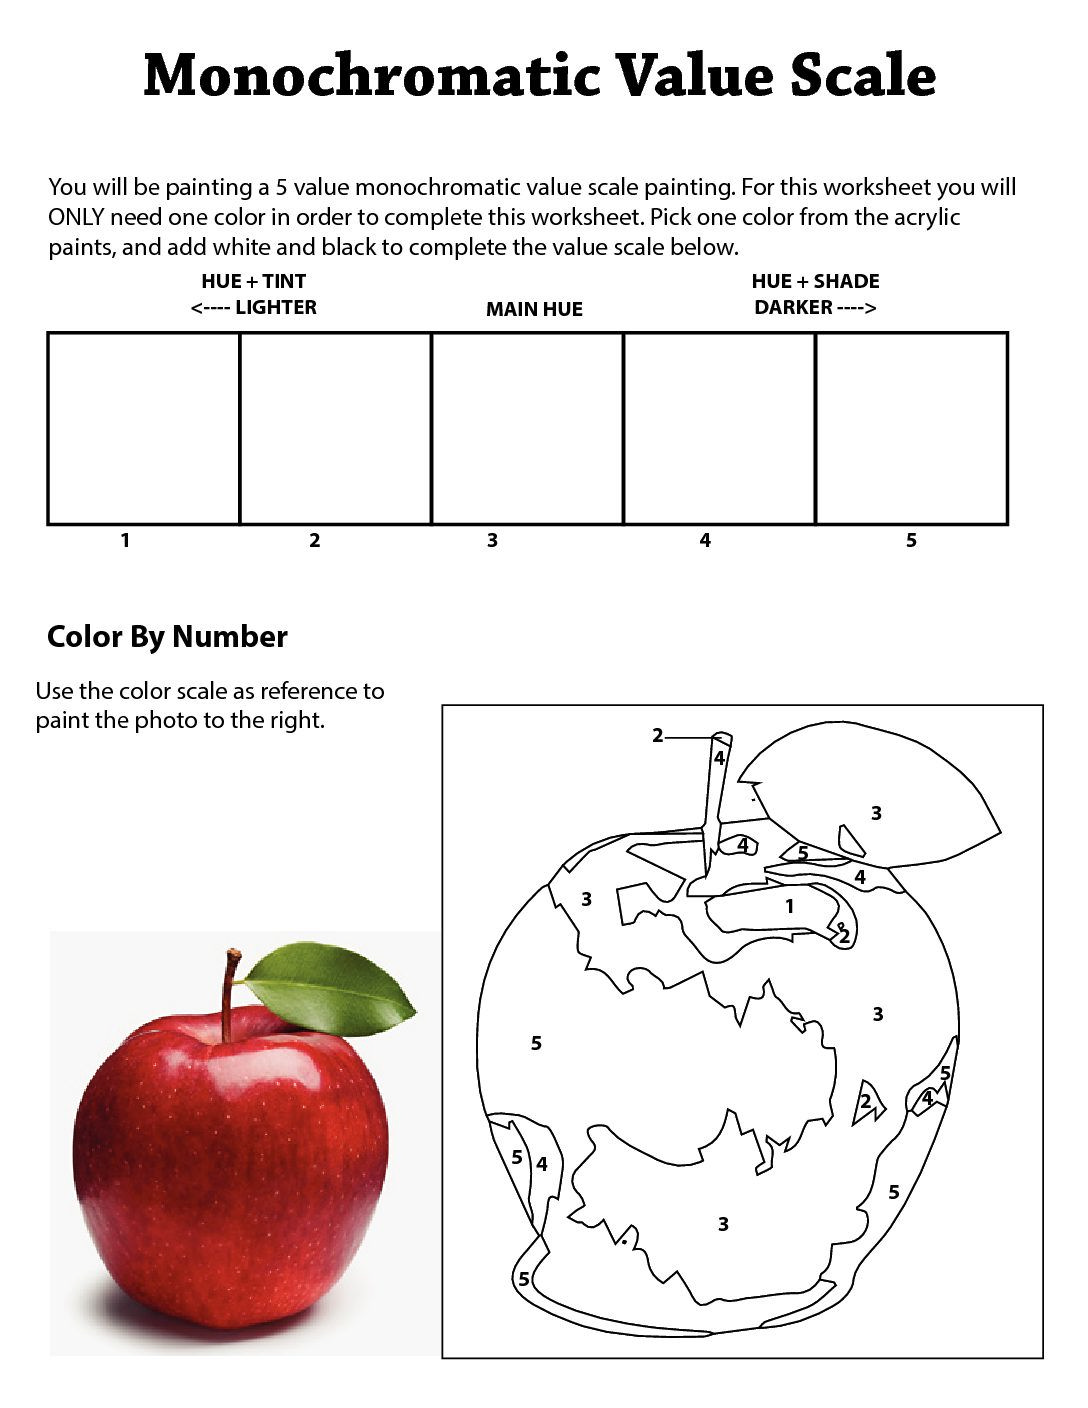 Monochromatic Value Worksheet With Images